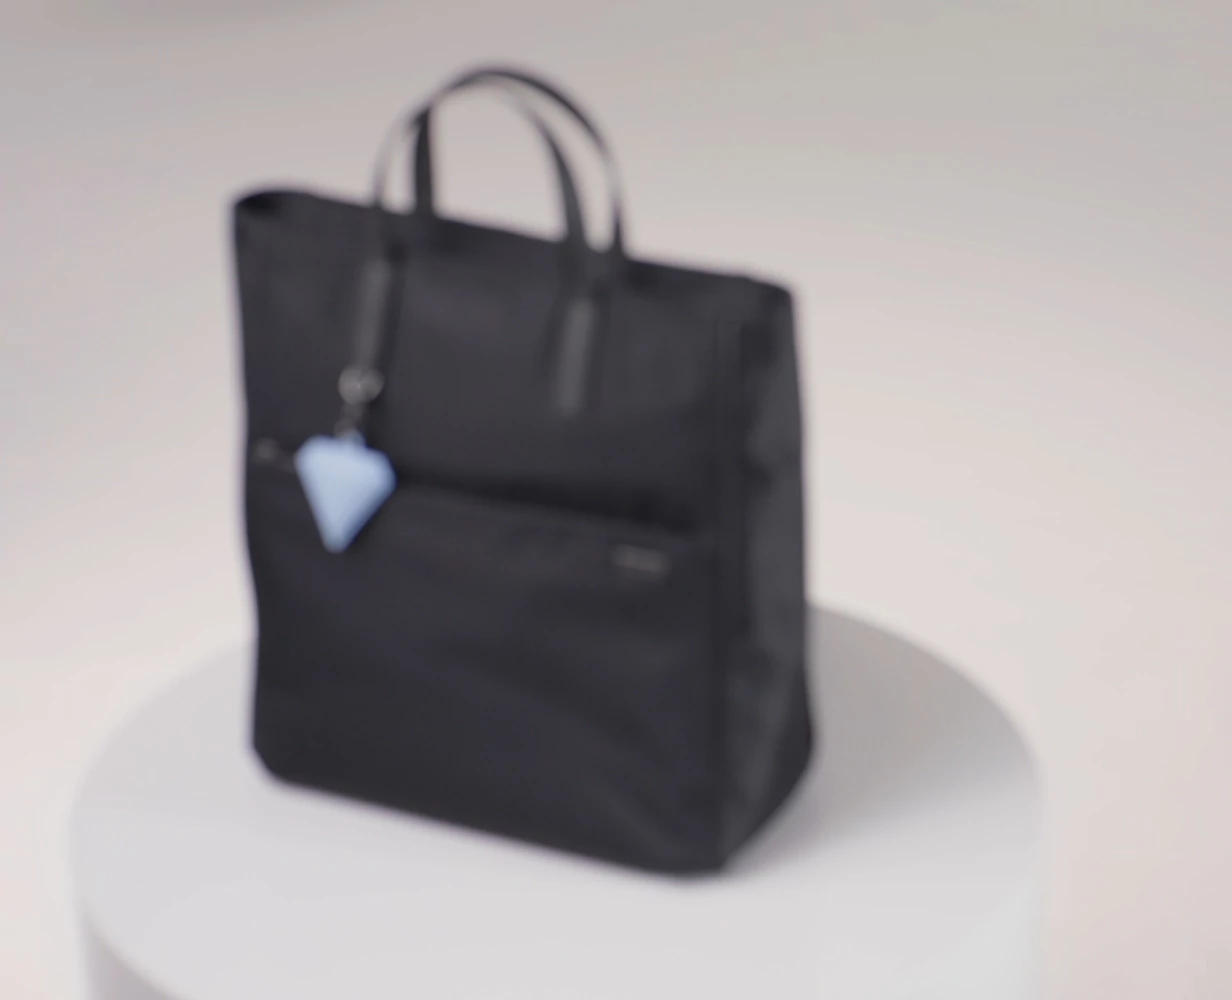 Video showing versatile functionality of The Convertible Backpack Tote, showing convertible straps being tucked away to carry as either a tote or a backpack